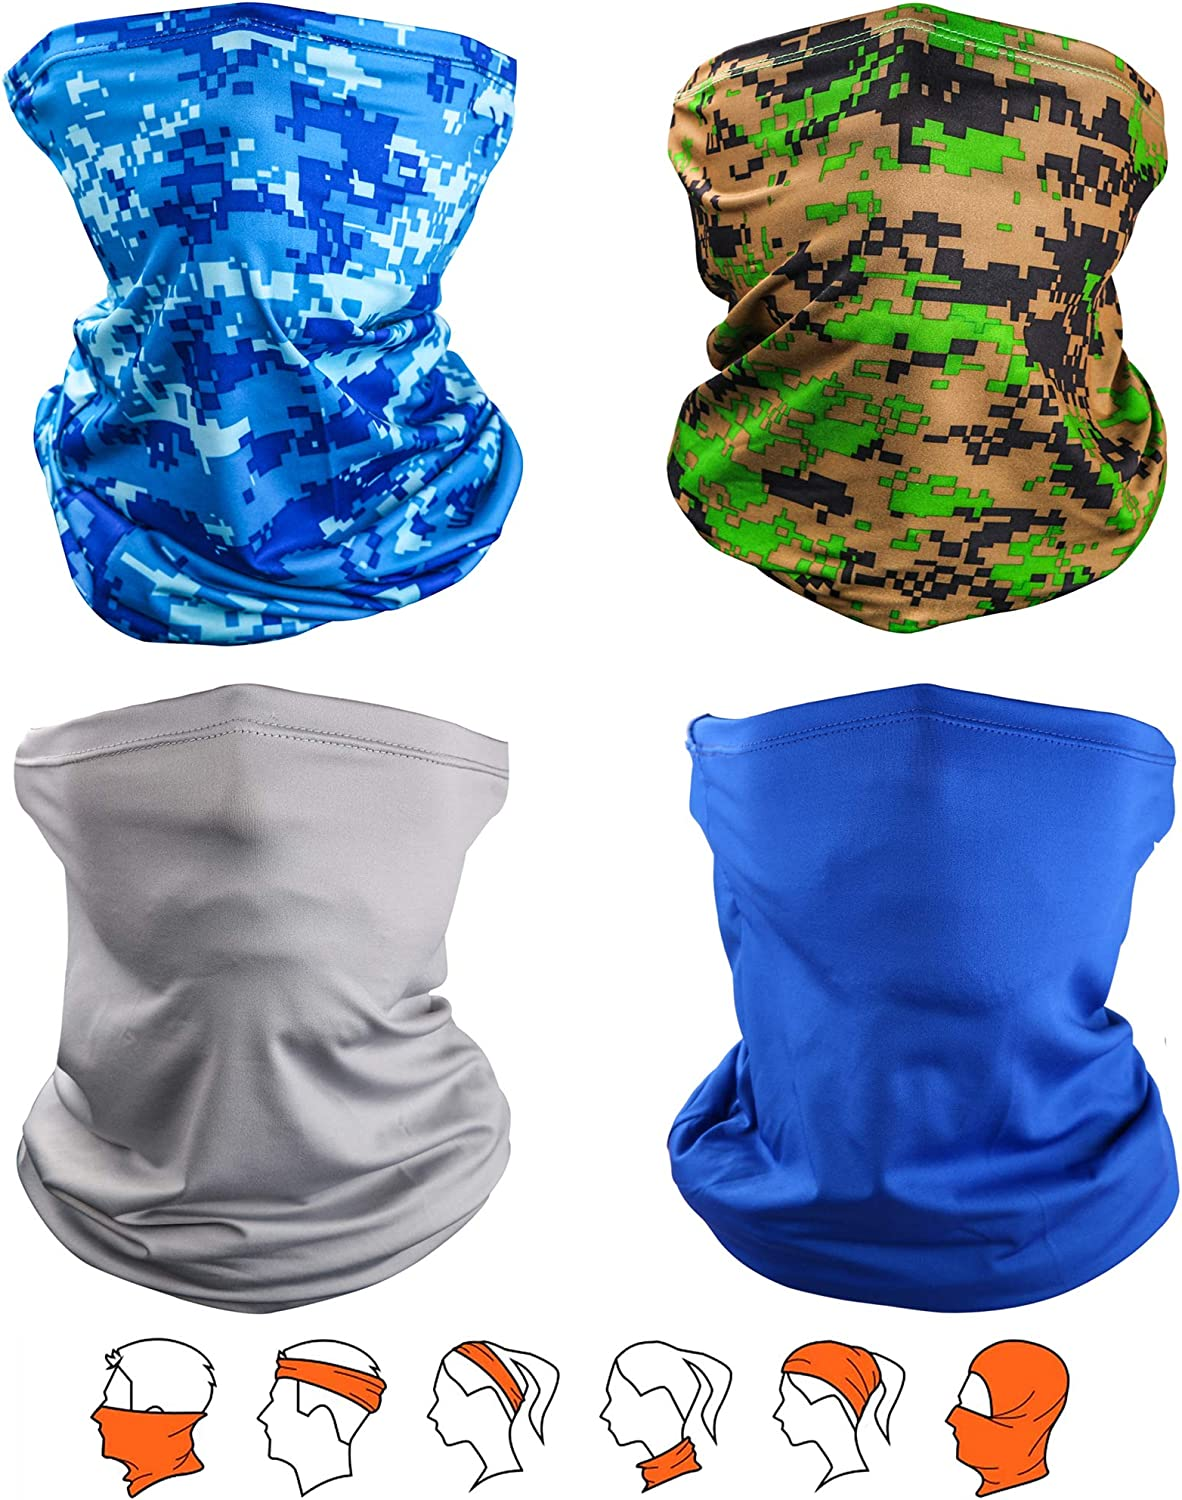 Yemo [4 Pack] Unisex Sun UV Protection Cooling Face Scarf Cover Mask Neck Gaiter, Headband Fishing Mask, Reusable Breathable Bandana Balaclava, Motorcycle Face Cover for Men Women